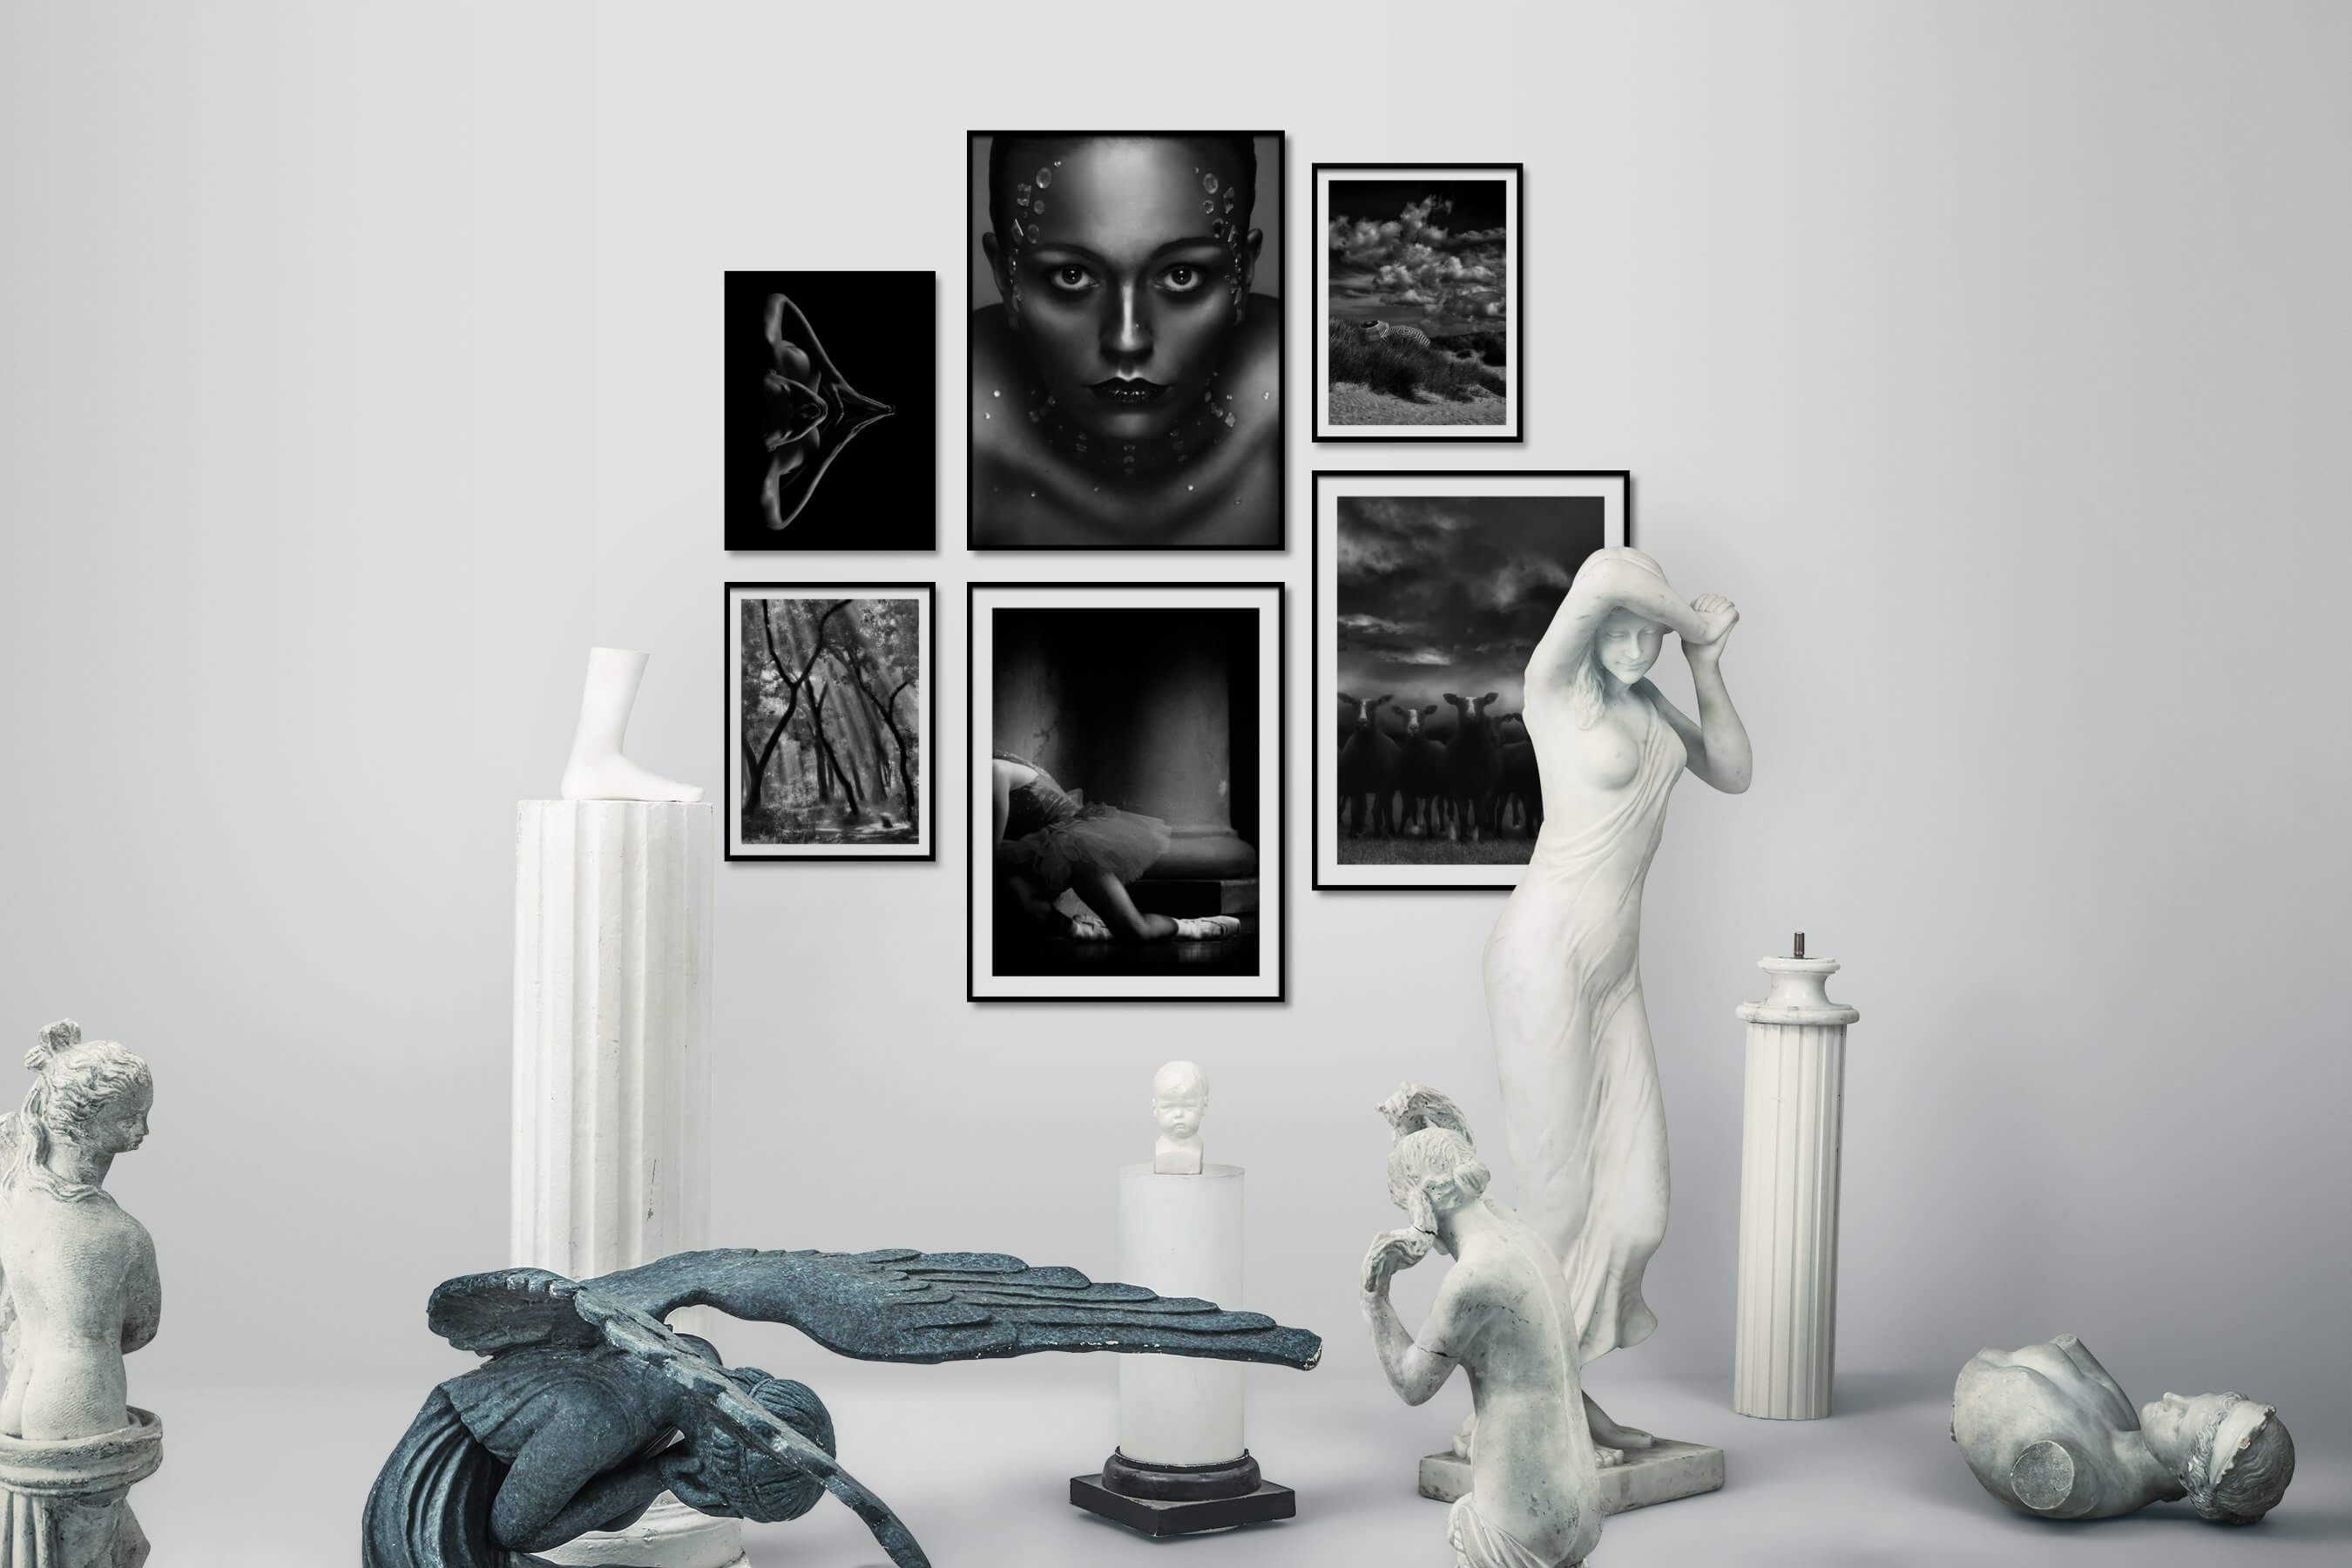 Gallery wall idea with six framed pictures arranged on a wall depicting Fashion & Beauty, Black & White, Dark Tones, For the Minimalist, Nature, Beach & Water, Animals, and Country Life